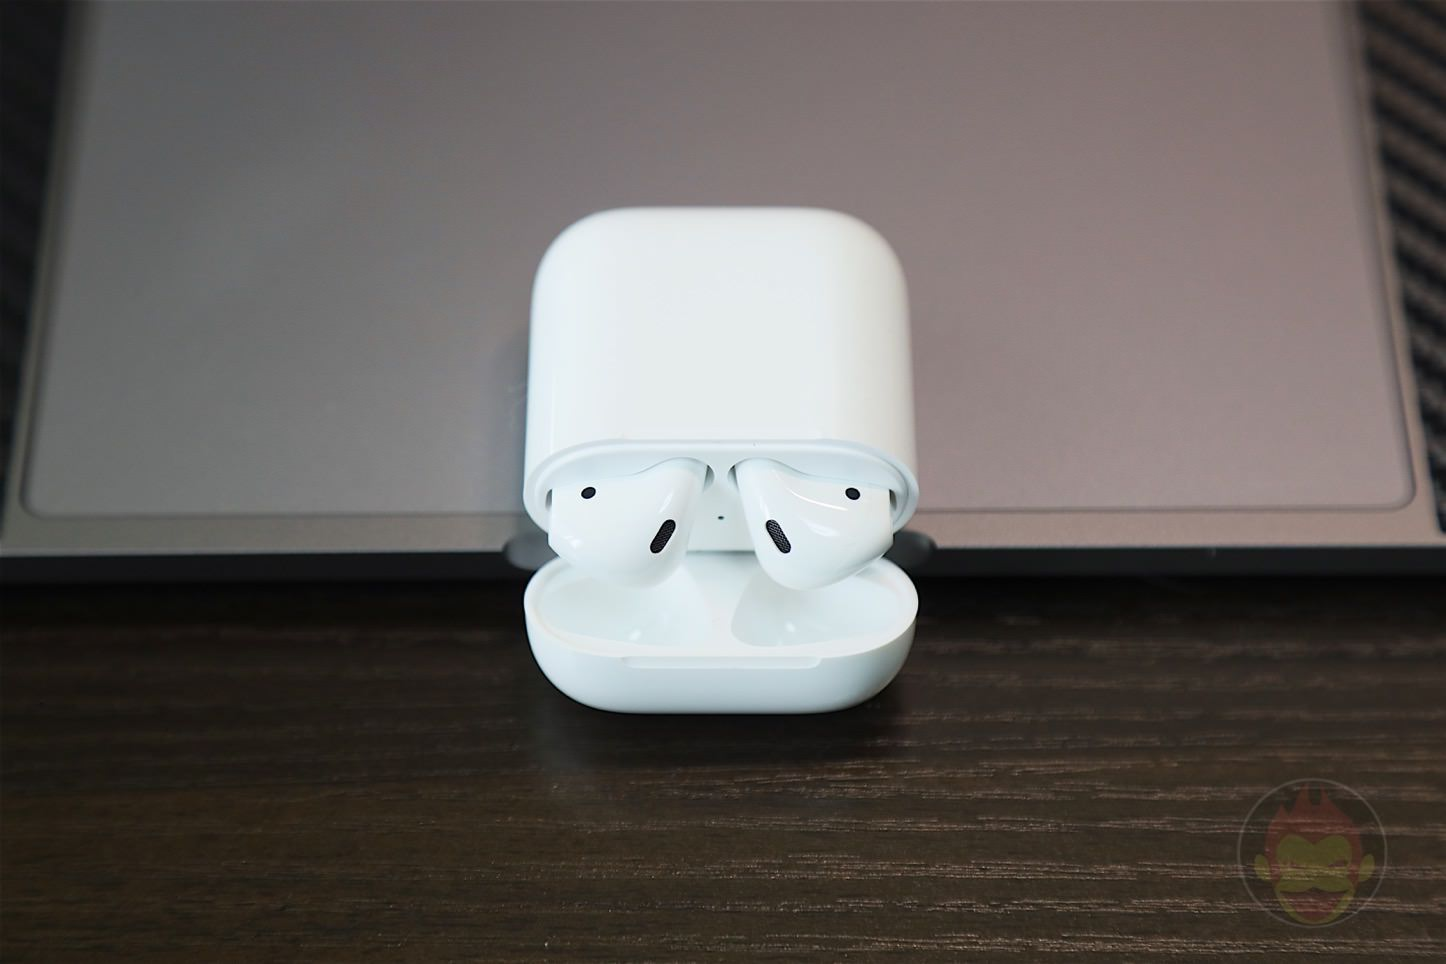 Apple-AirPods-Wireless-Earphones-10.jpg